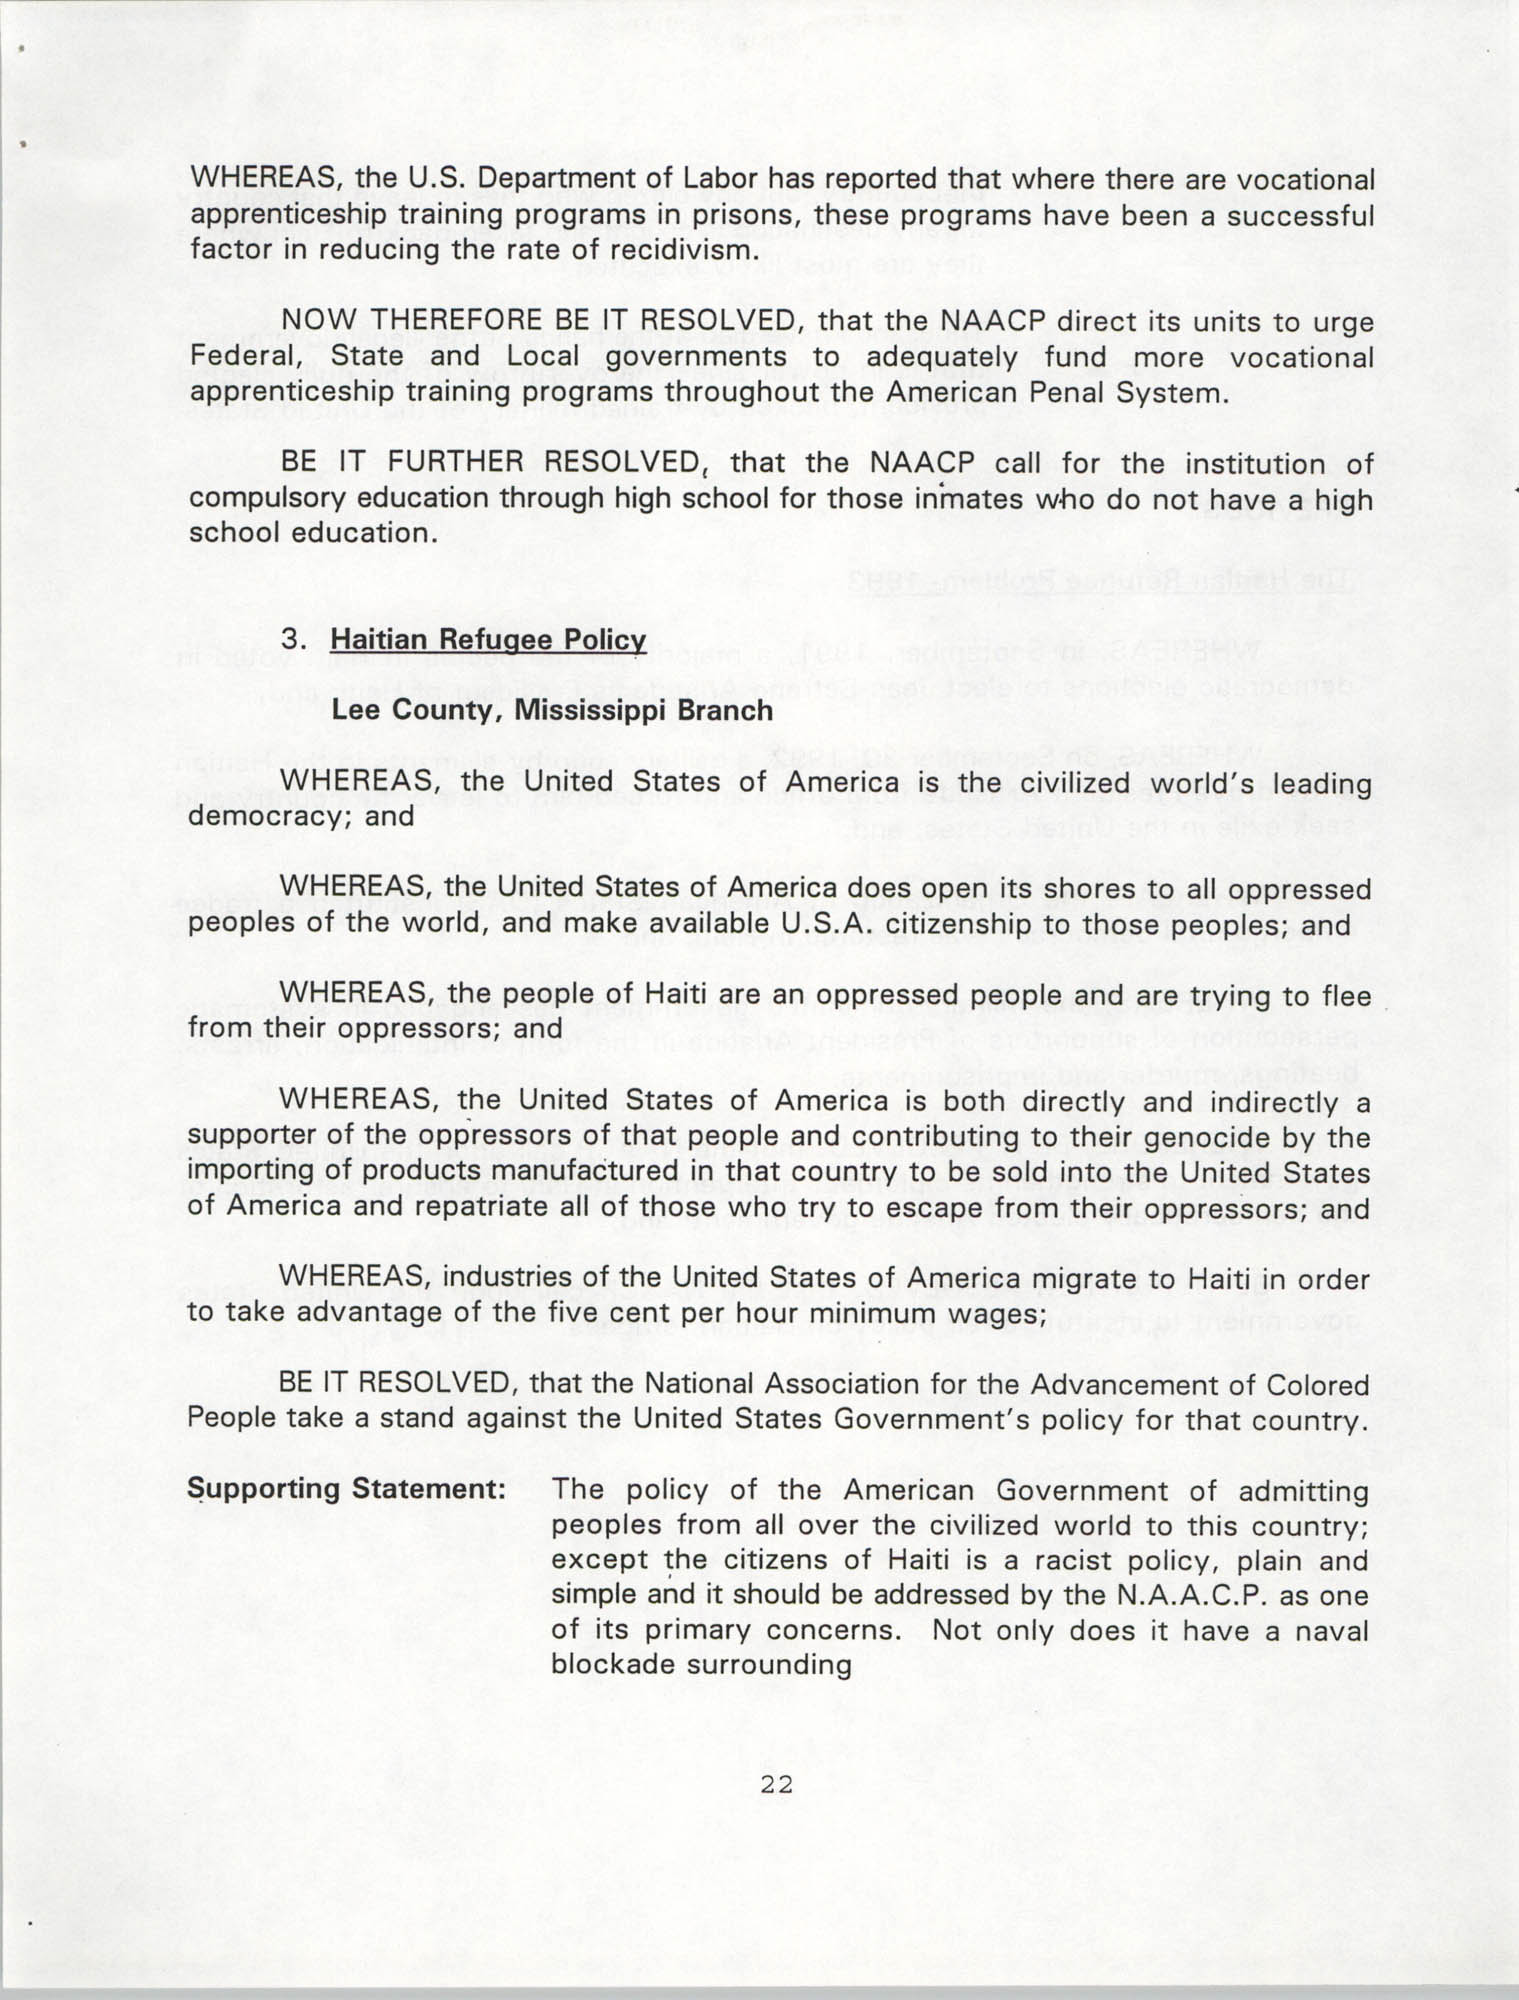 Resolutions Submitted Under Article X, Section 2 of the Constitution of the NAACP, 1994, Page 22